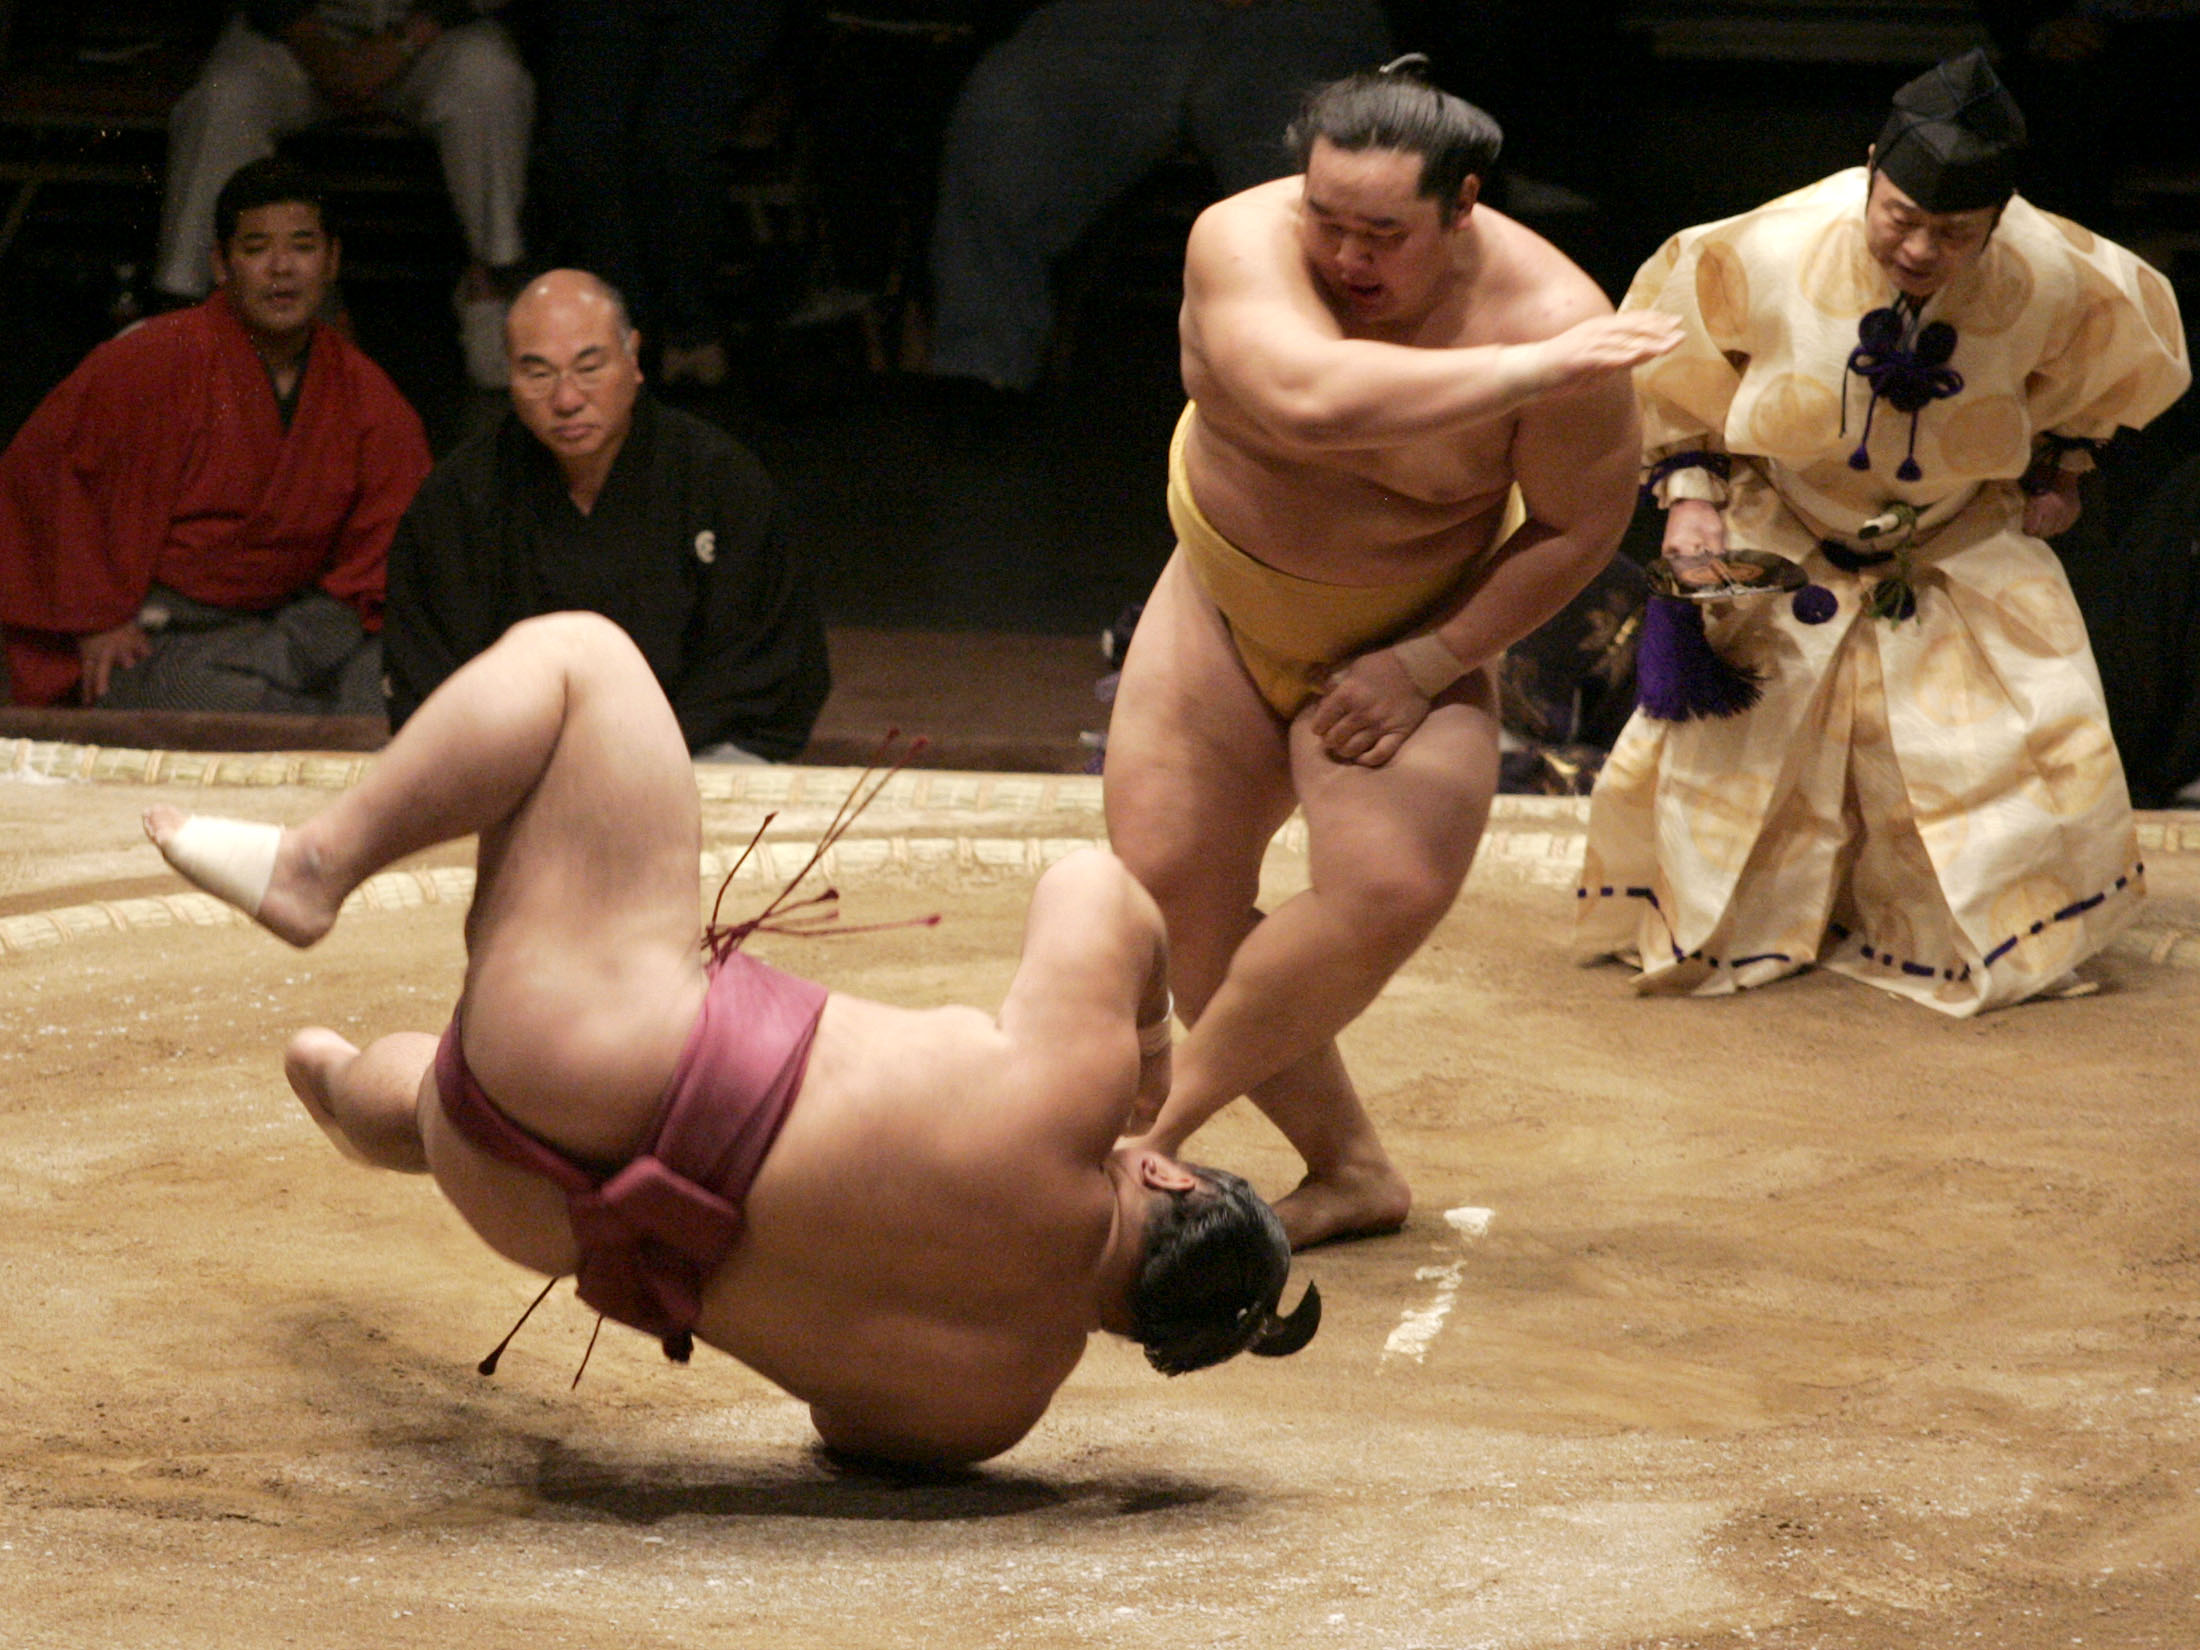 Mongolian sumo wrestler Asashoryu (R) throws down Chiyotaikai (L) of Japan to win the grand championship during the third day of the Grand Sumo Championship Las Vegas tournament at the Mandalay Bay Events Center in Las Vegas, Nevada, October 9, 2005.